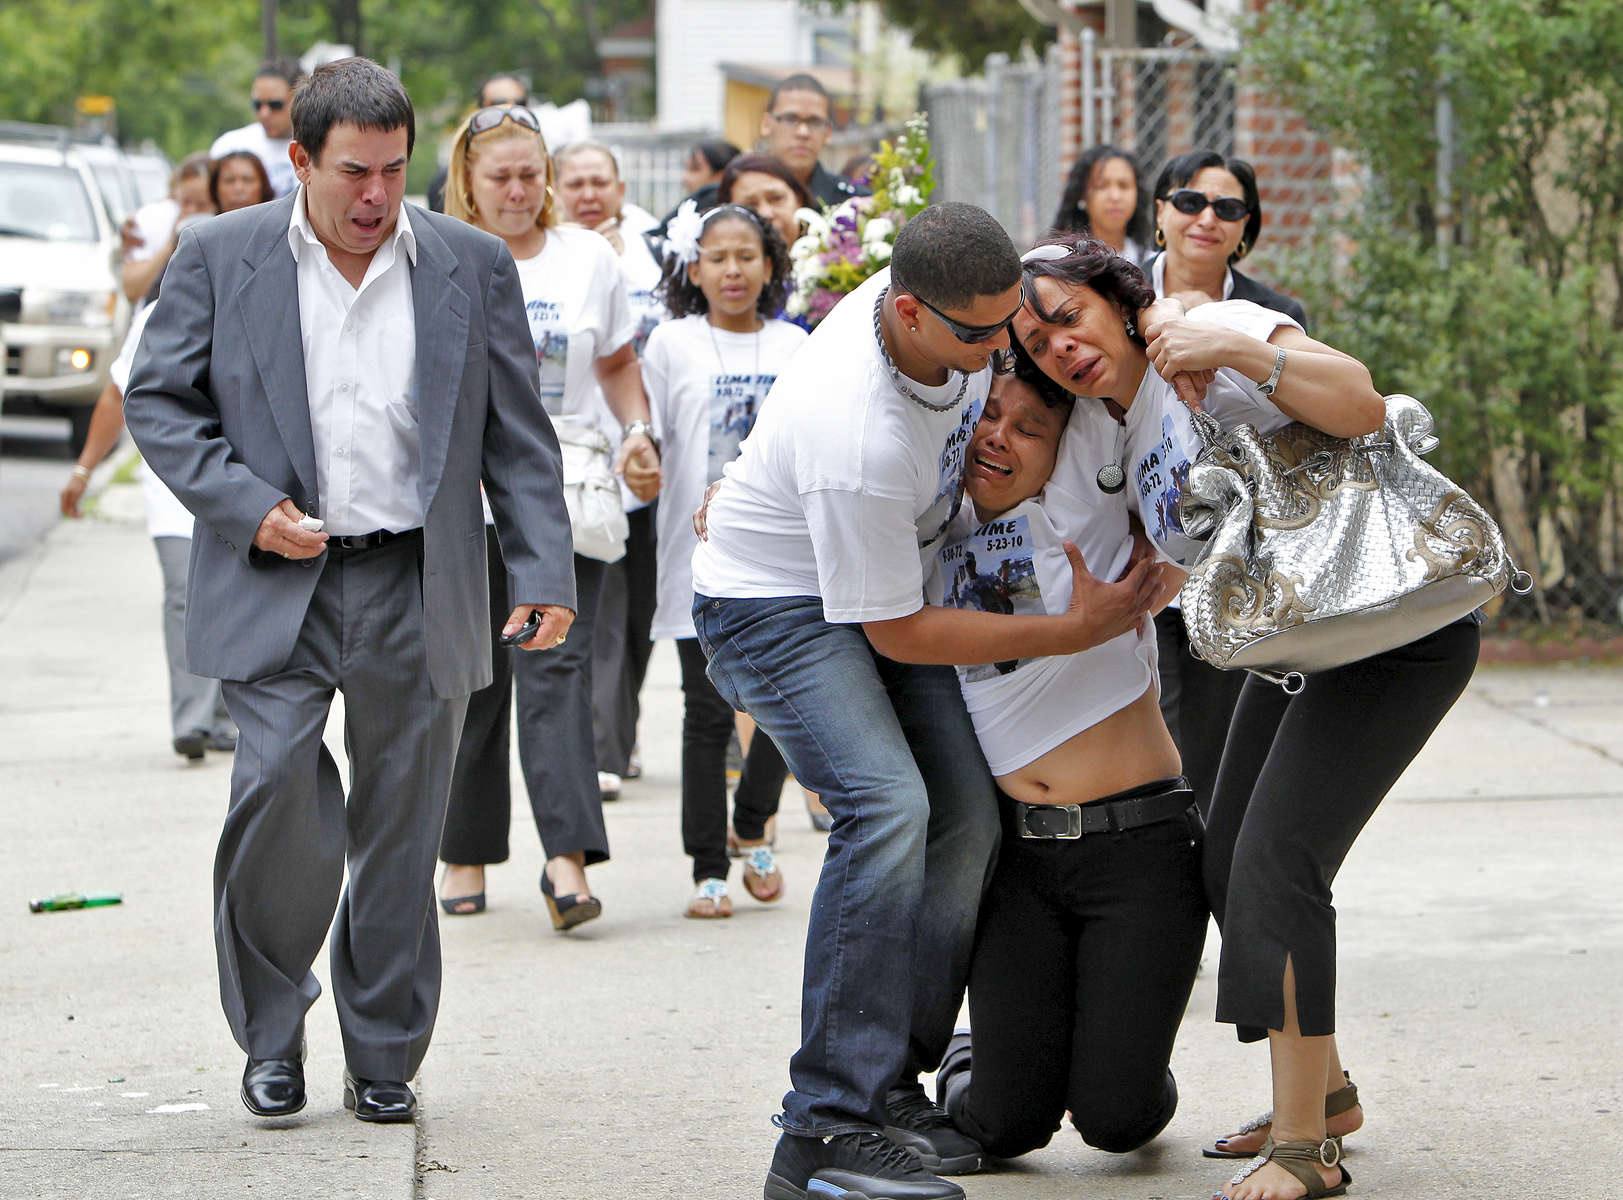 Janet Lima (sister of Jose Lima) collapsed at Jose Lima's wake held in Coppola-Migliore Inc. Funeral Home located at 49-01 104th Street in Corona, Queens on Friday, May 28, 2010.